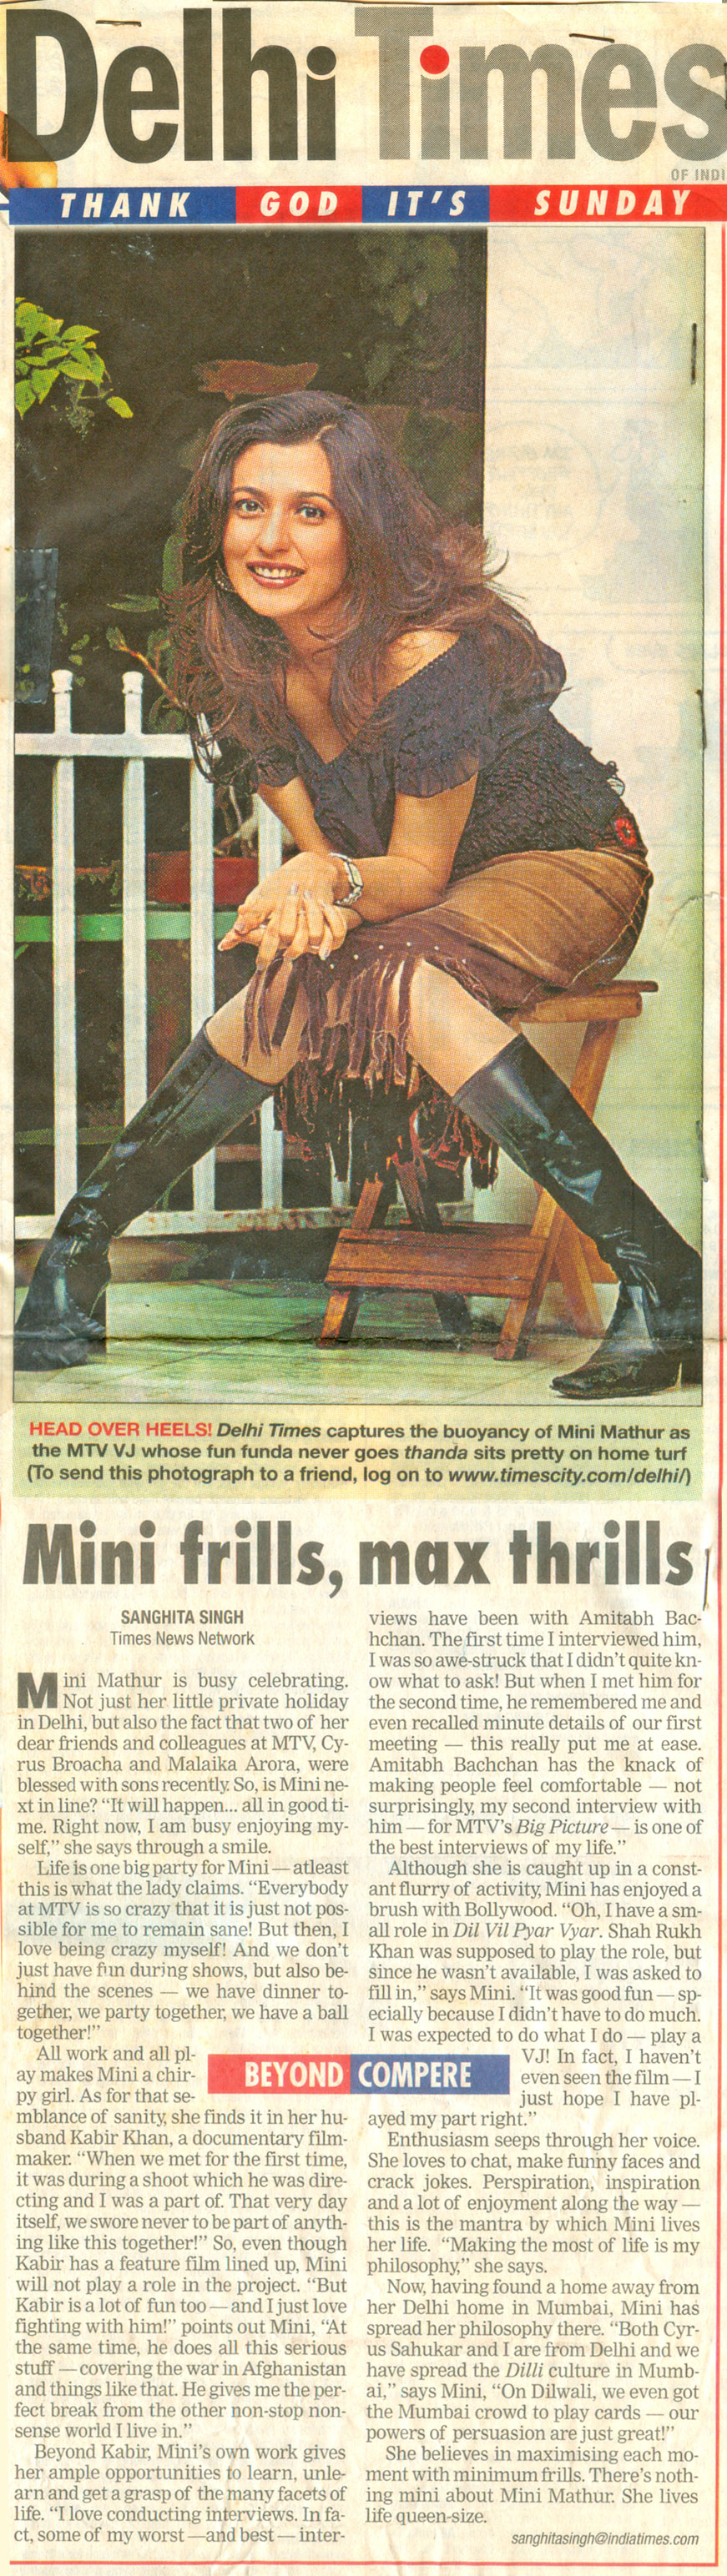 Mini Frills Max Thrills-Delhi-times-MTV